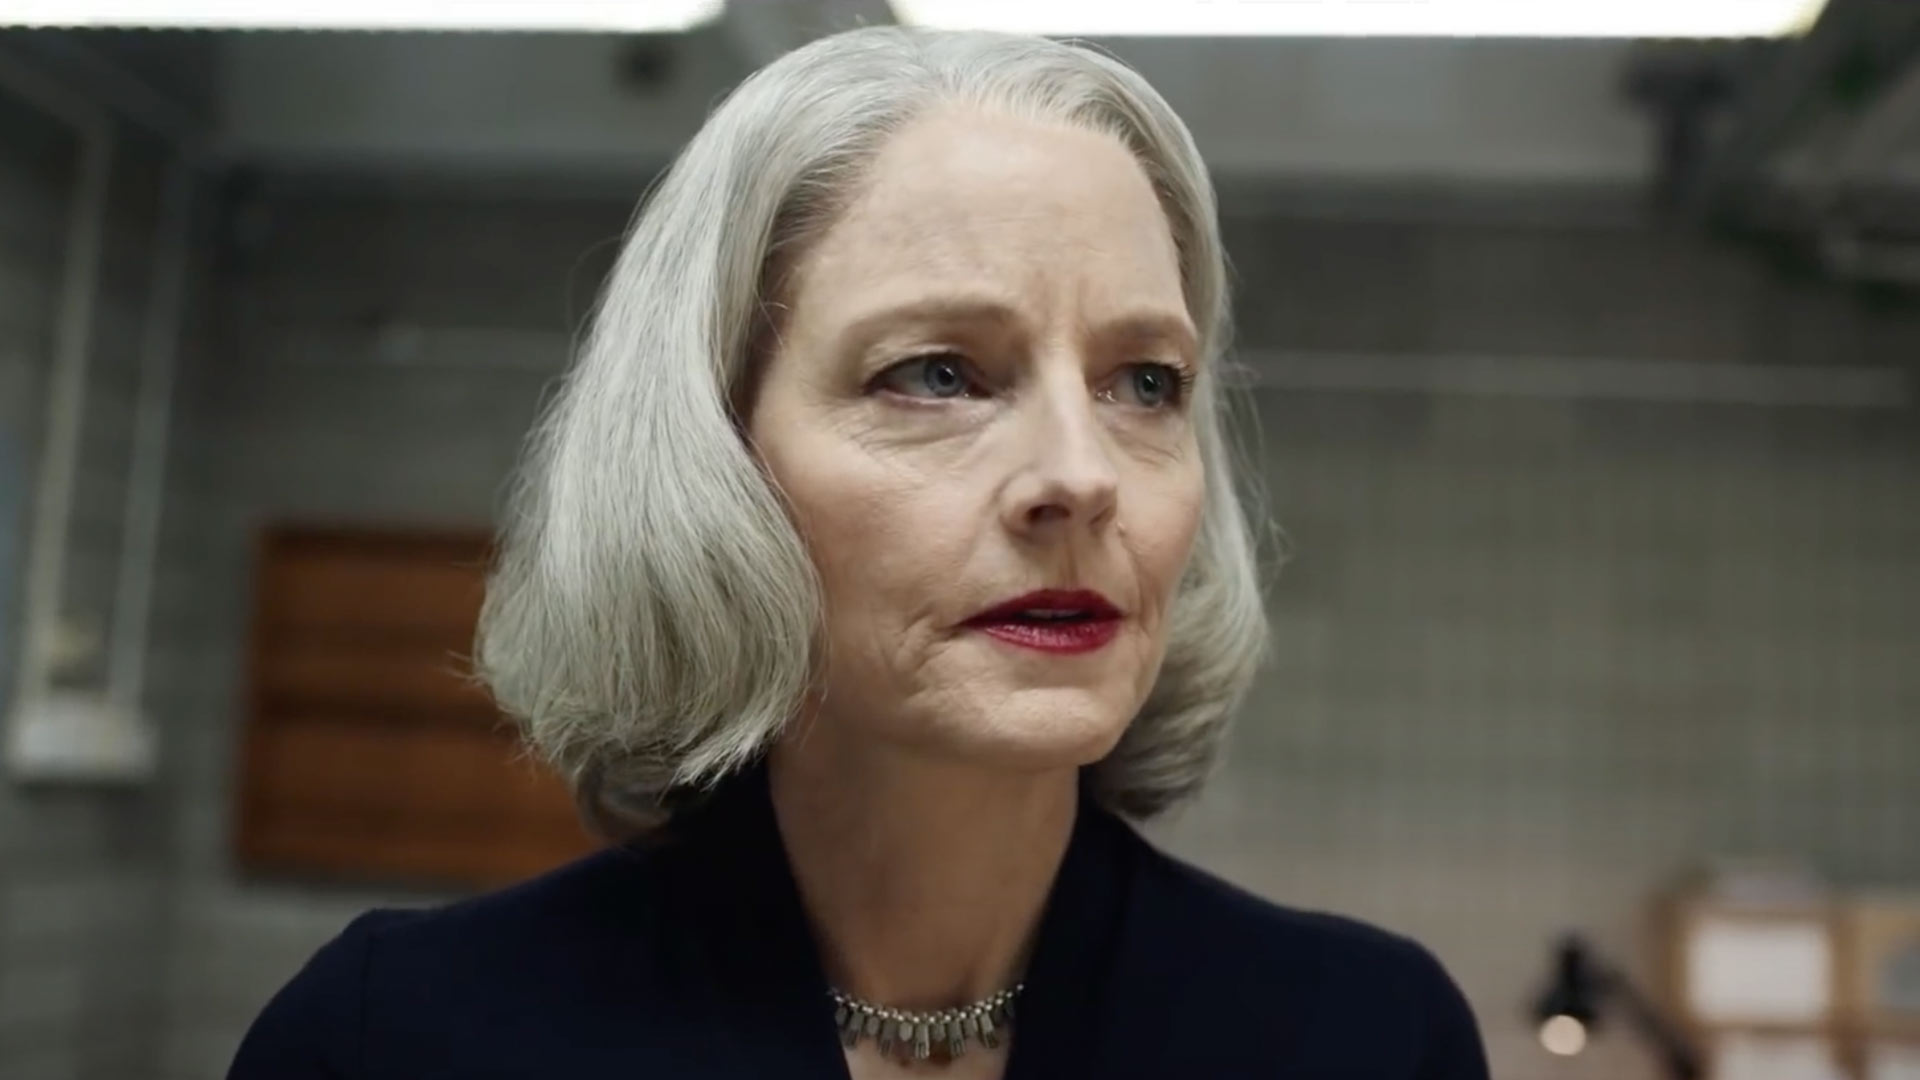 Jodie Foster Sports White Hair as a Defense Attorney in The Mauritanian Trailer에서